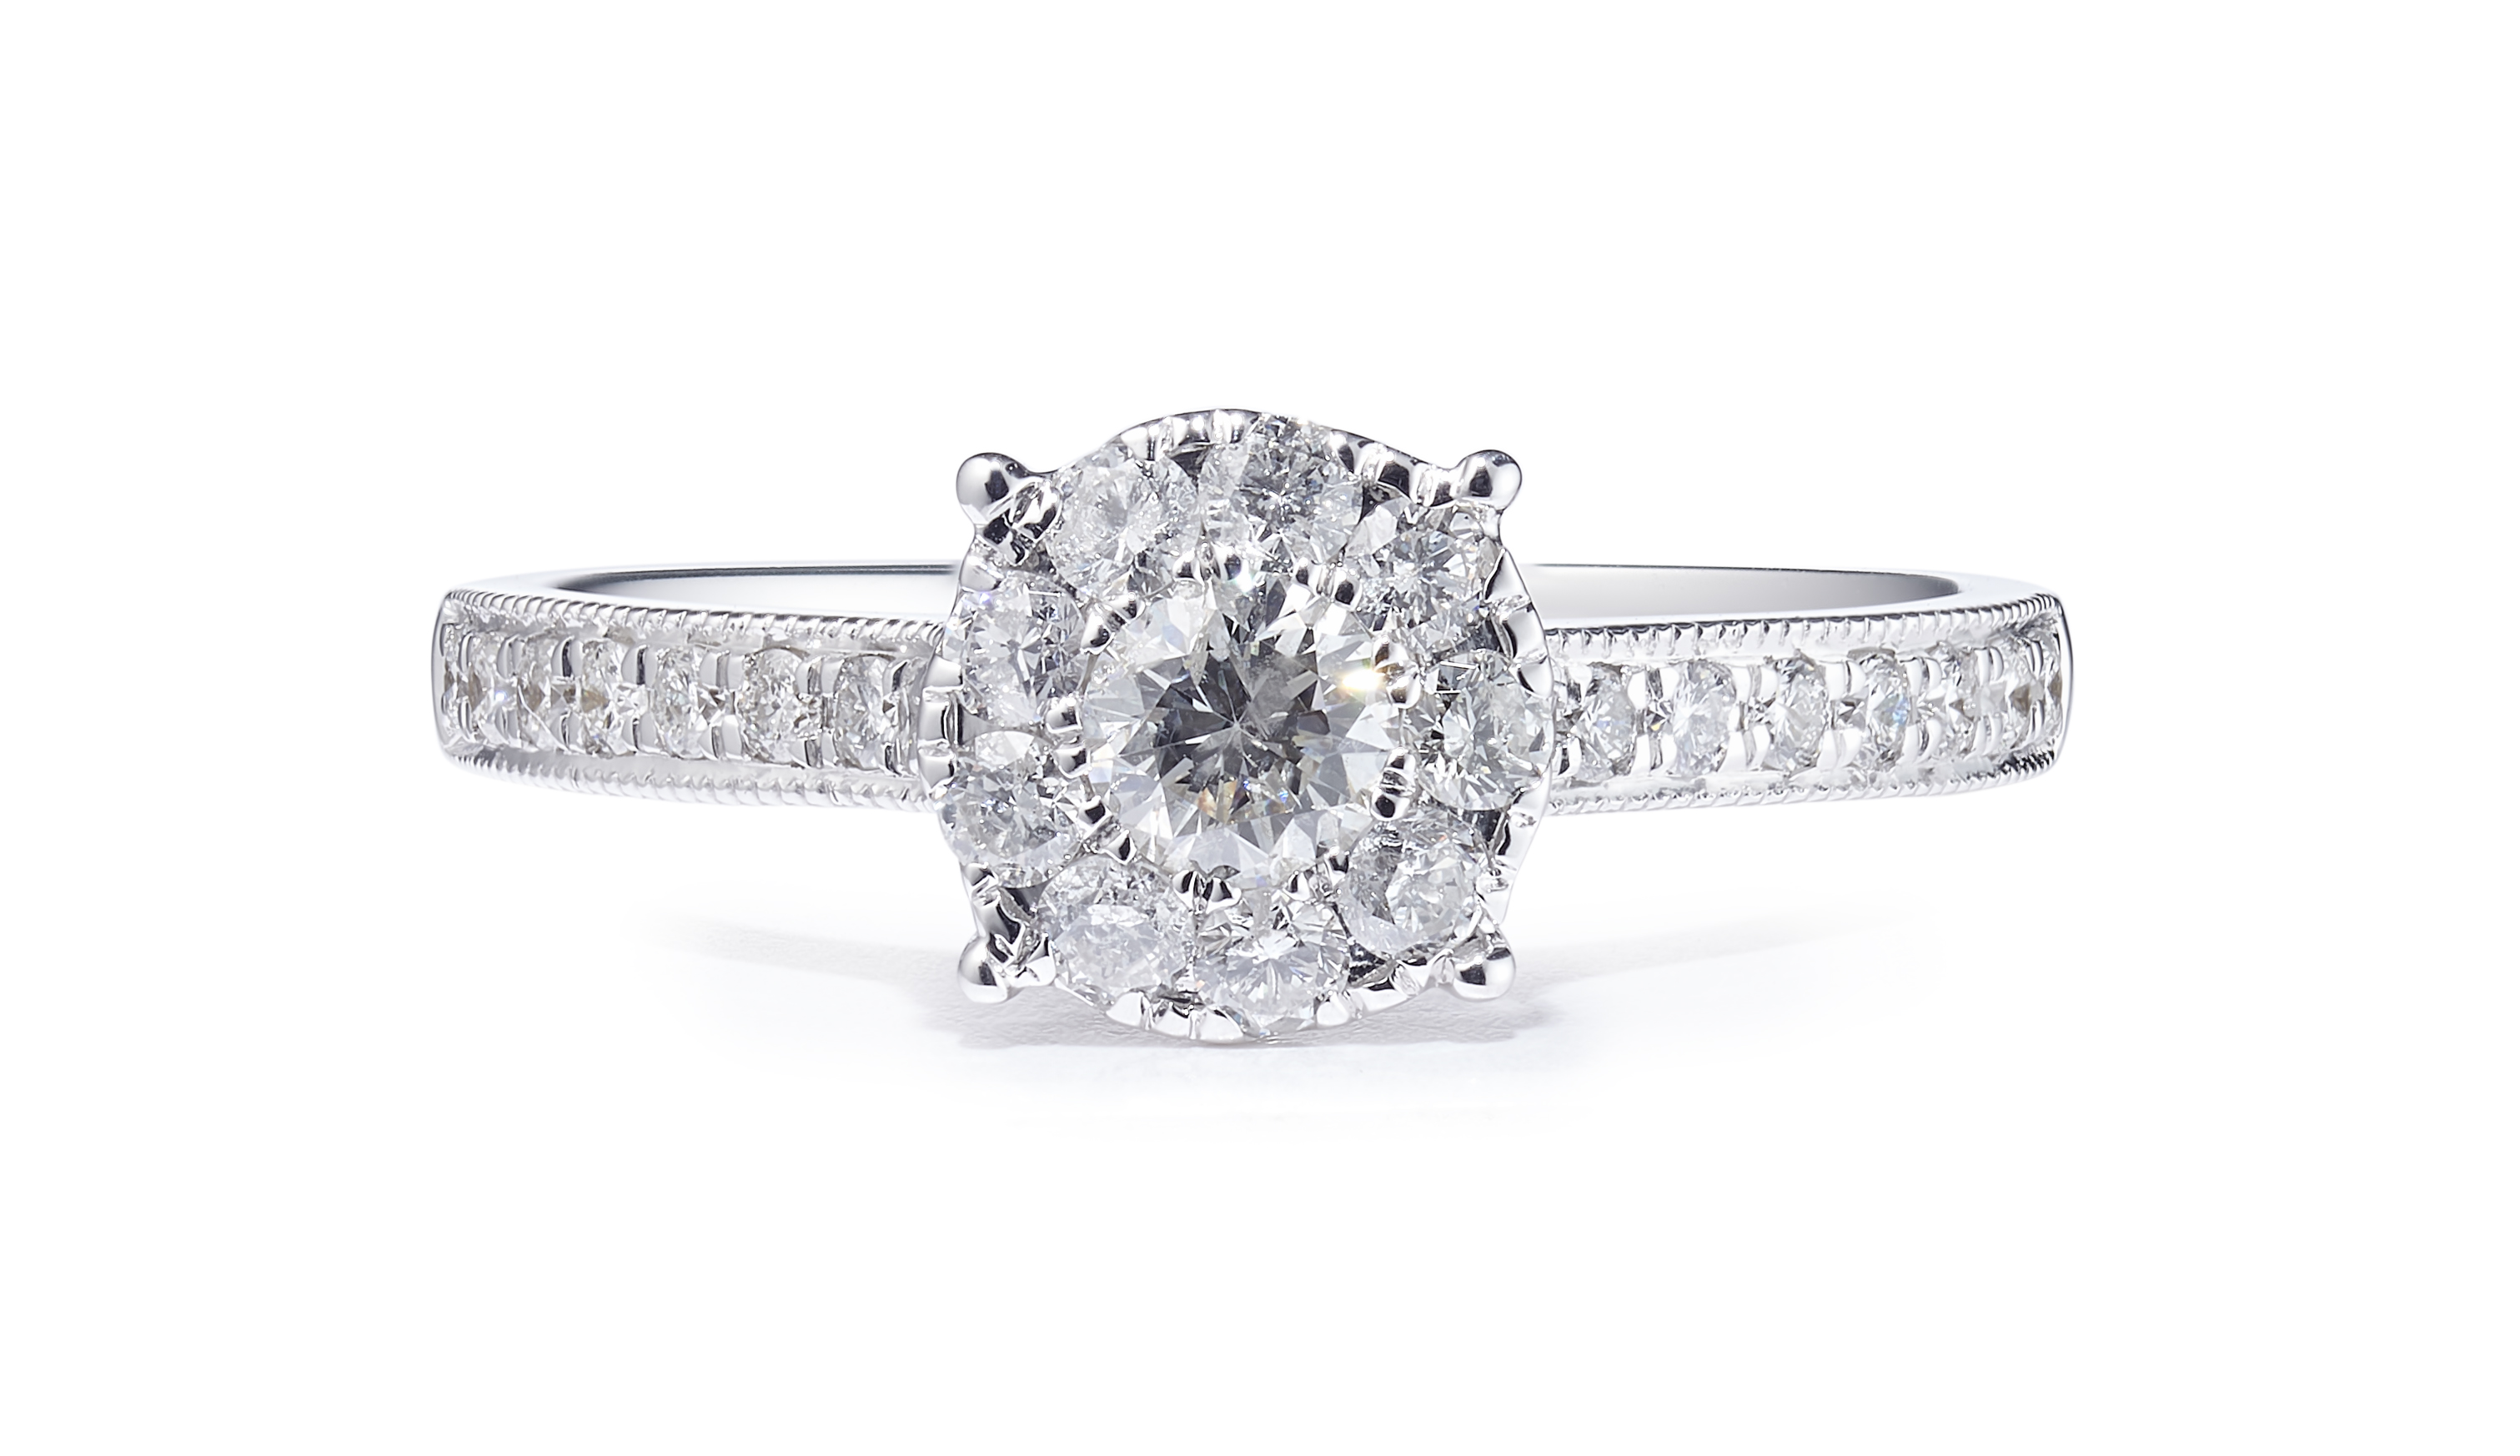 18ct White Gold Diamond Ring with Diamond Shoulders